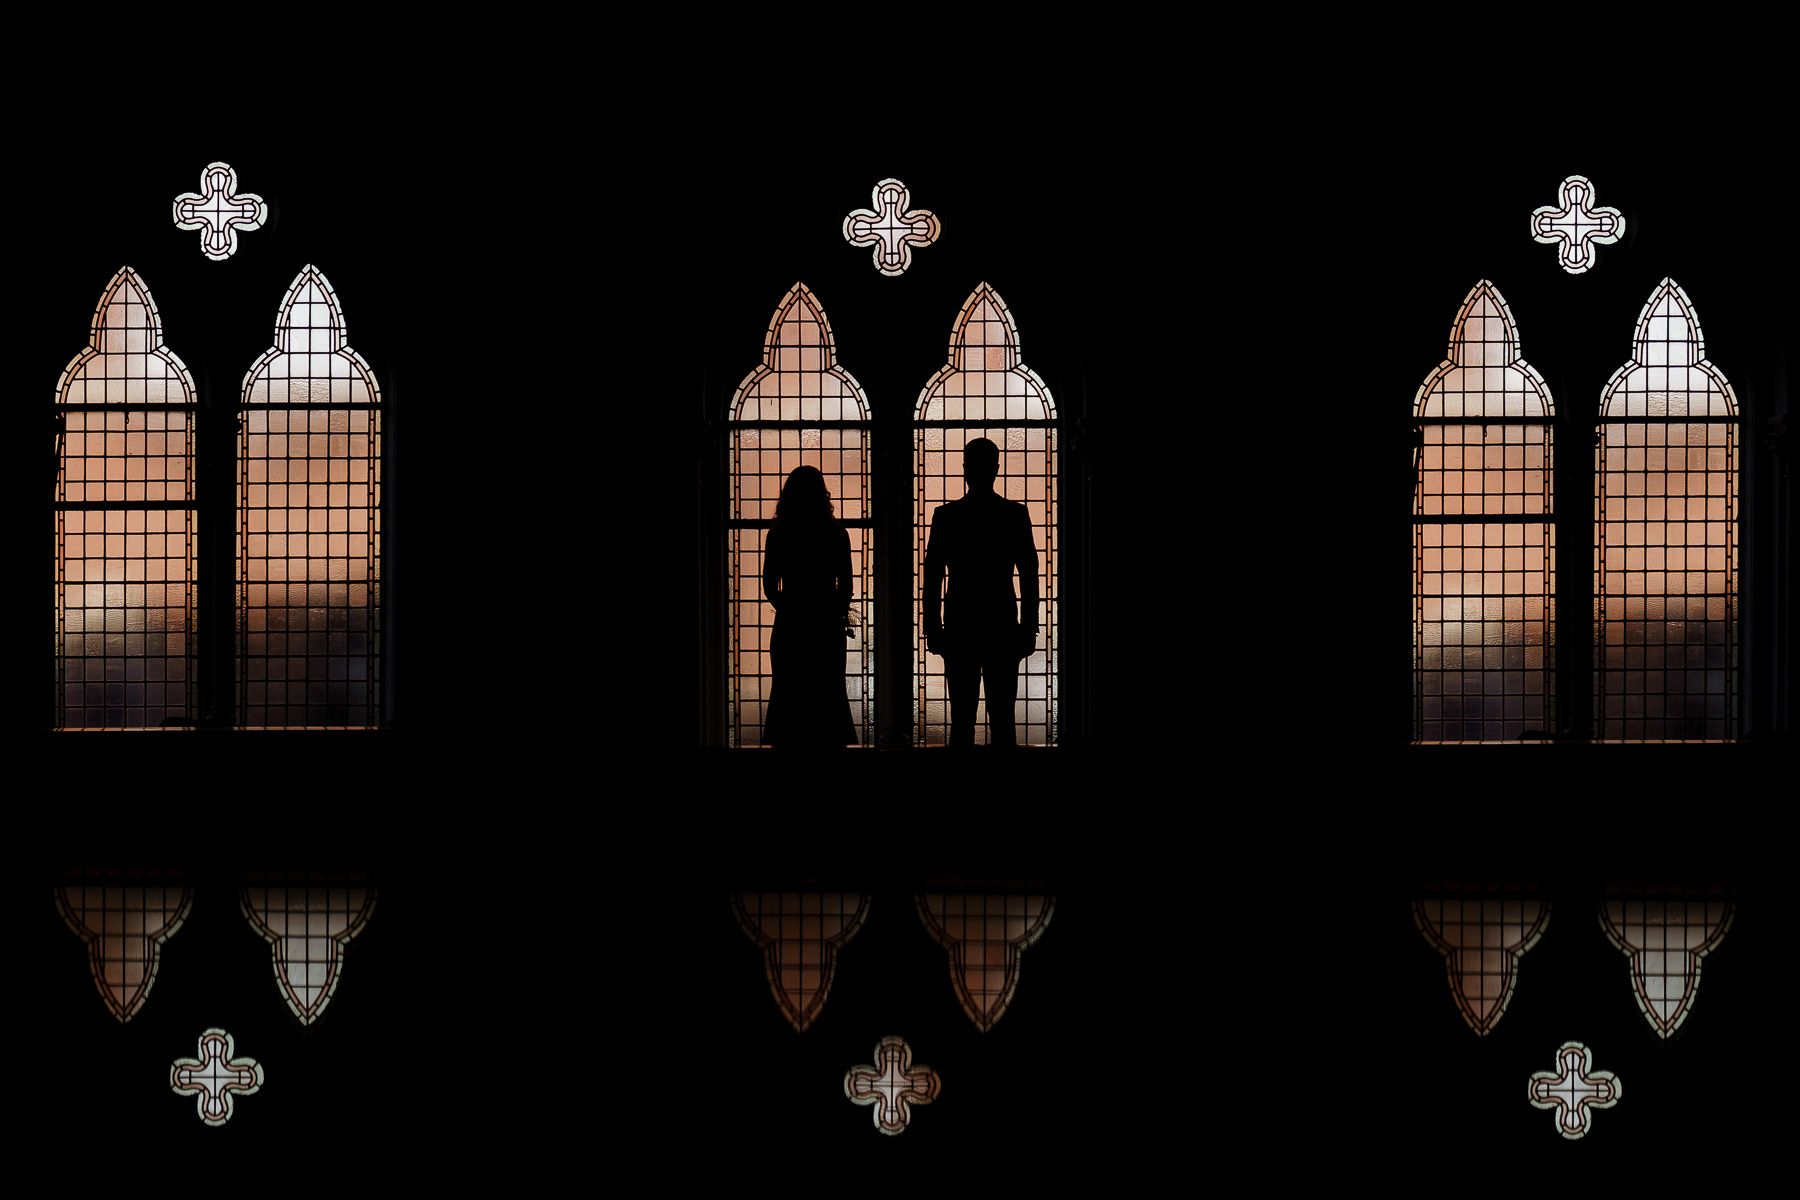 Creative silhouette wedding photography for introverts